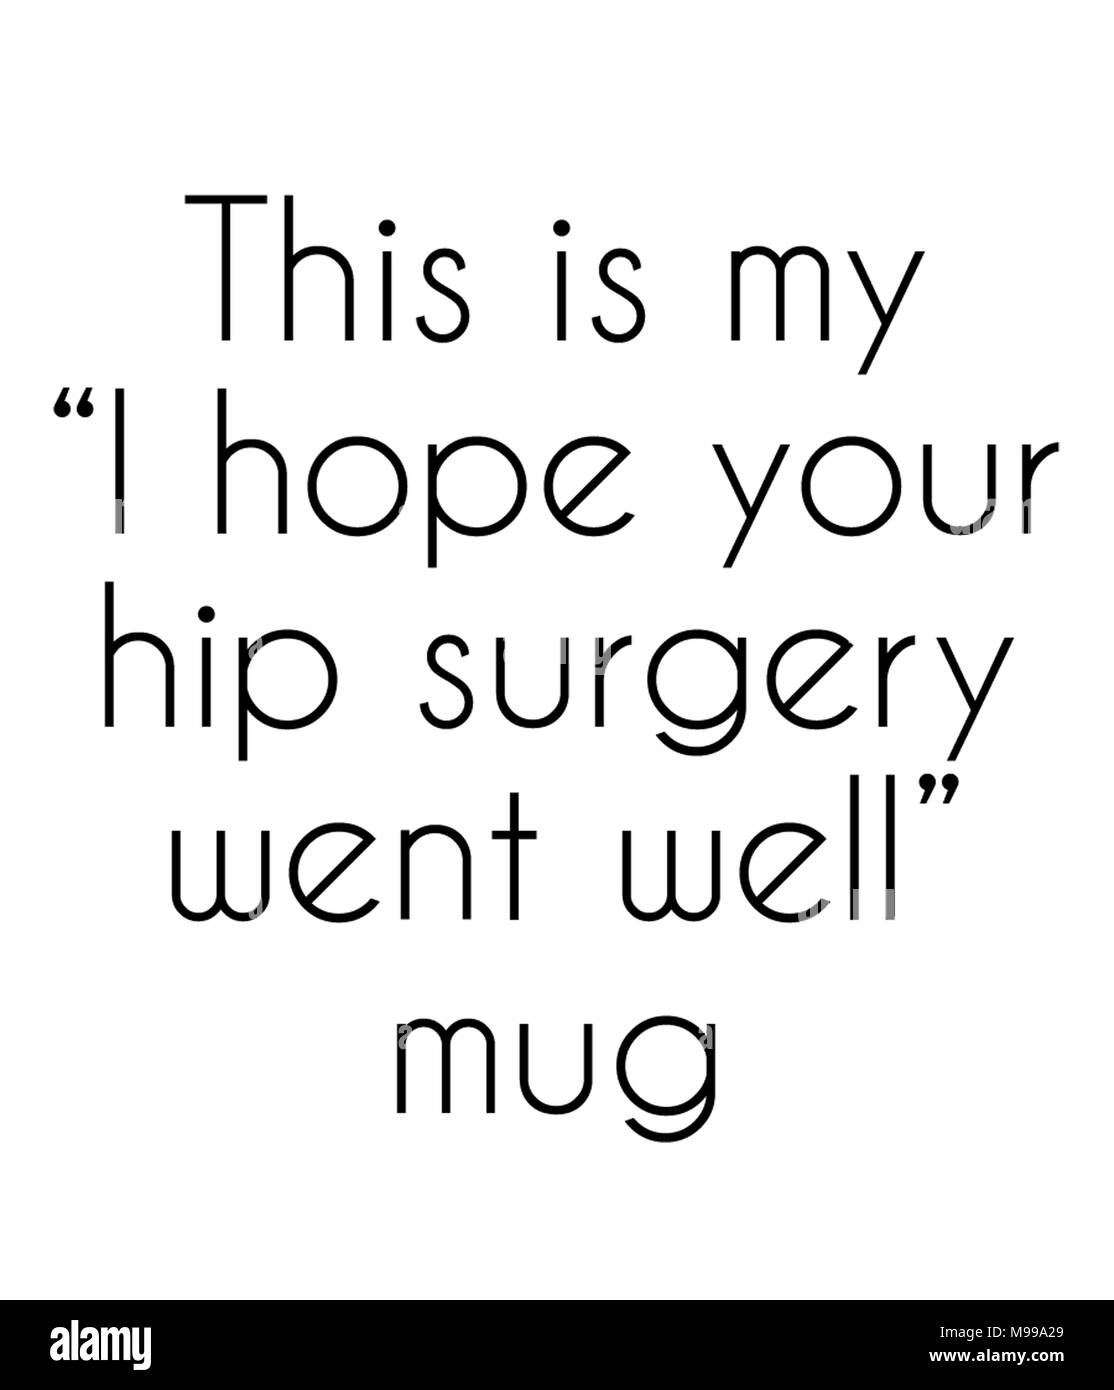 This is my I hope your hip surgery went well mug - Stock Image